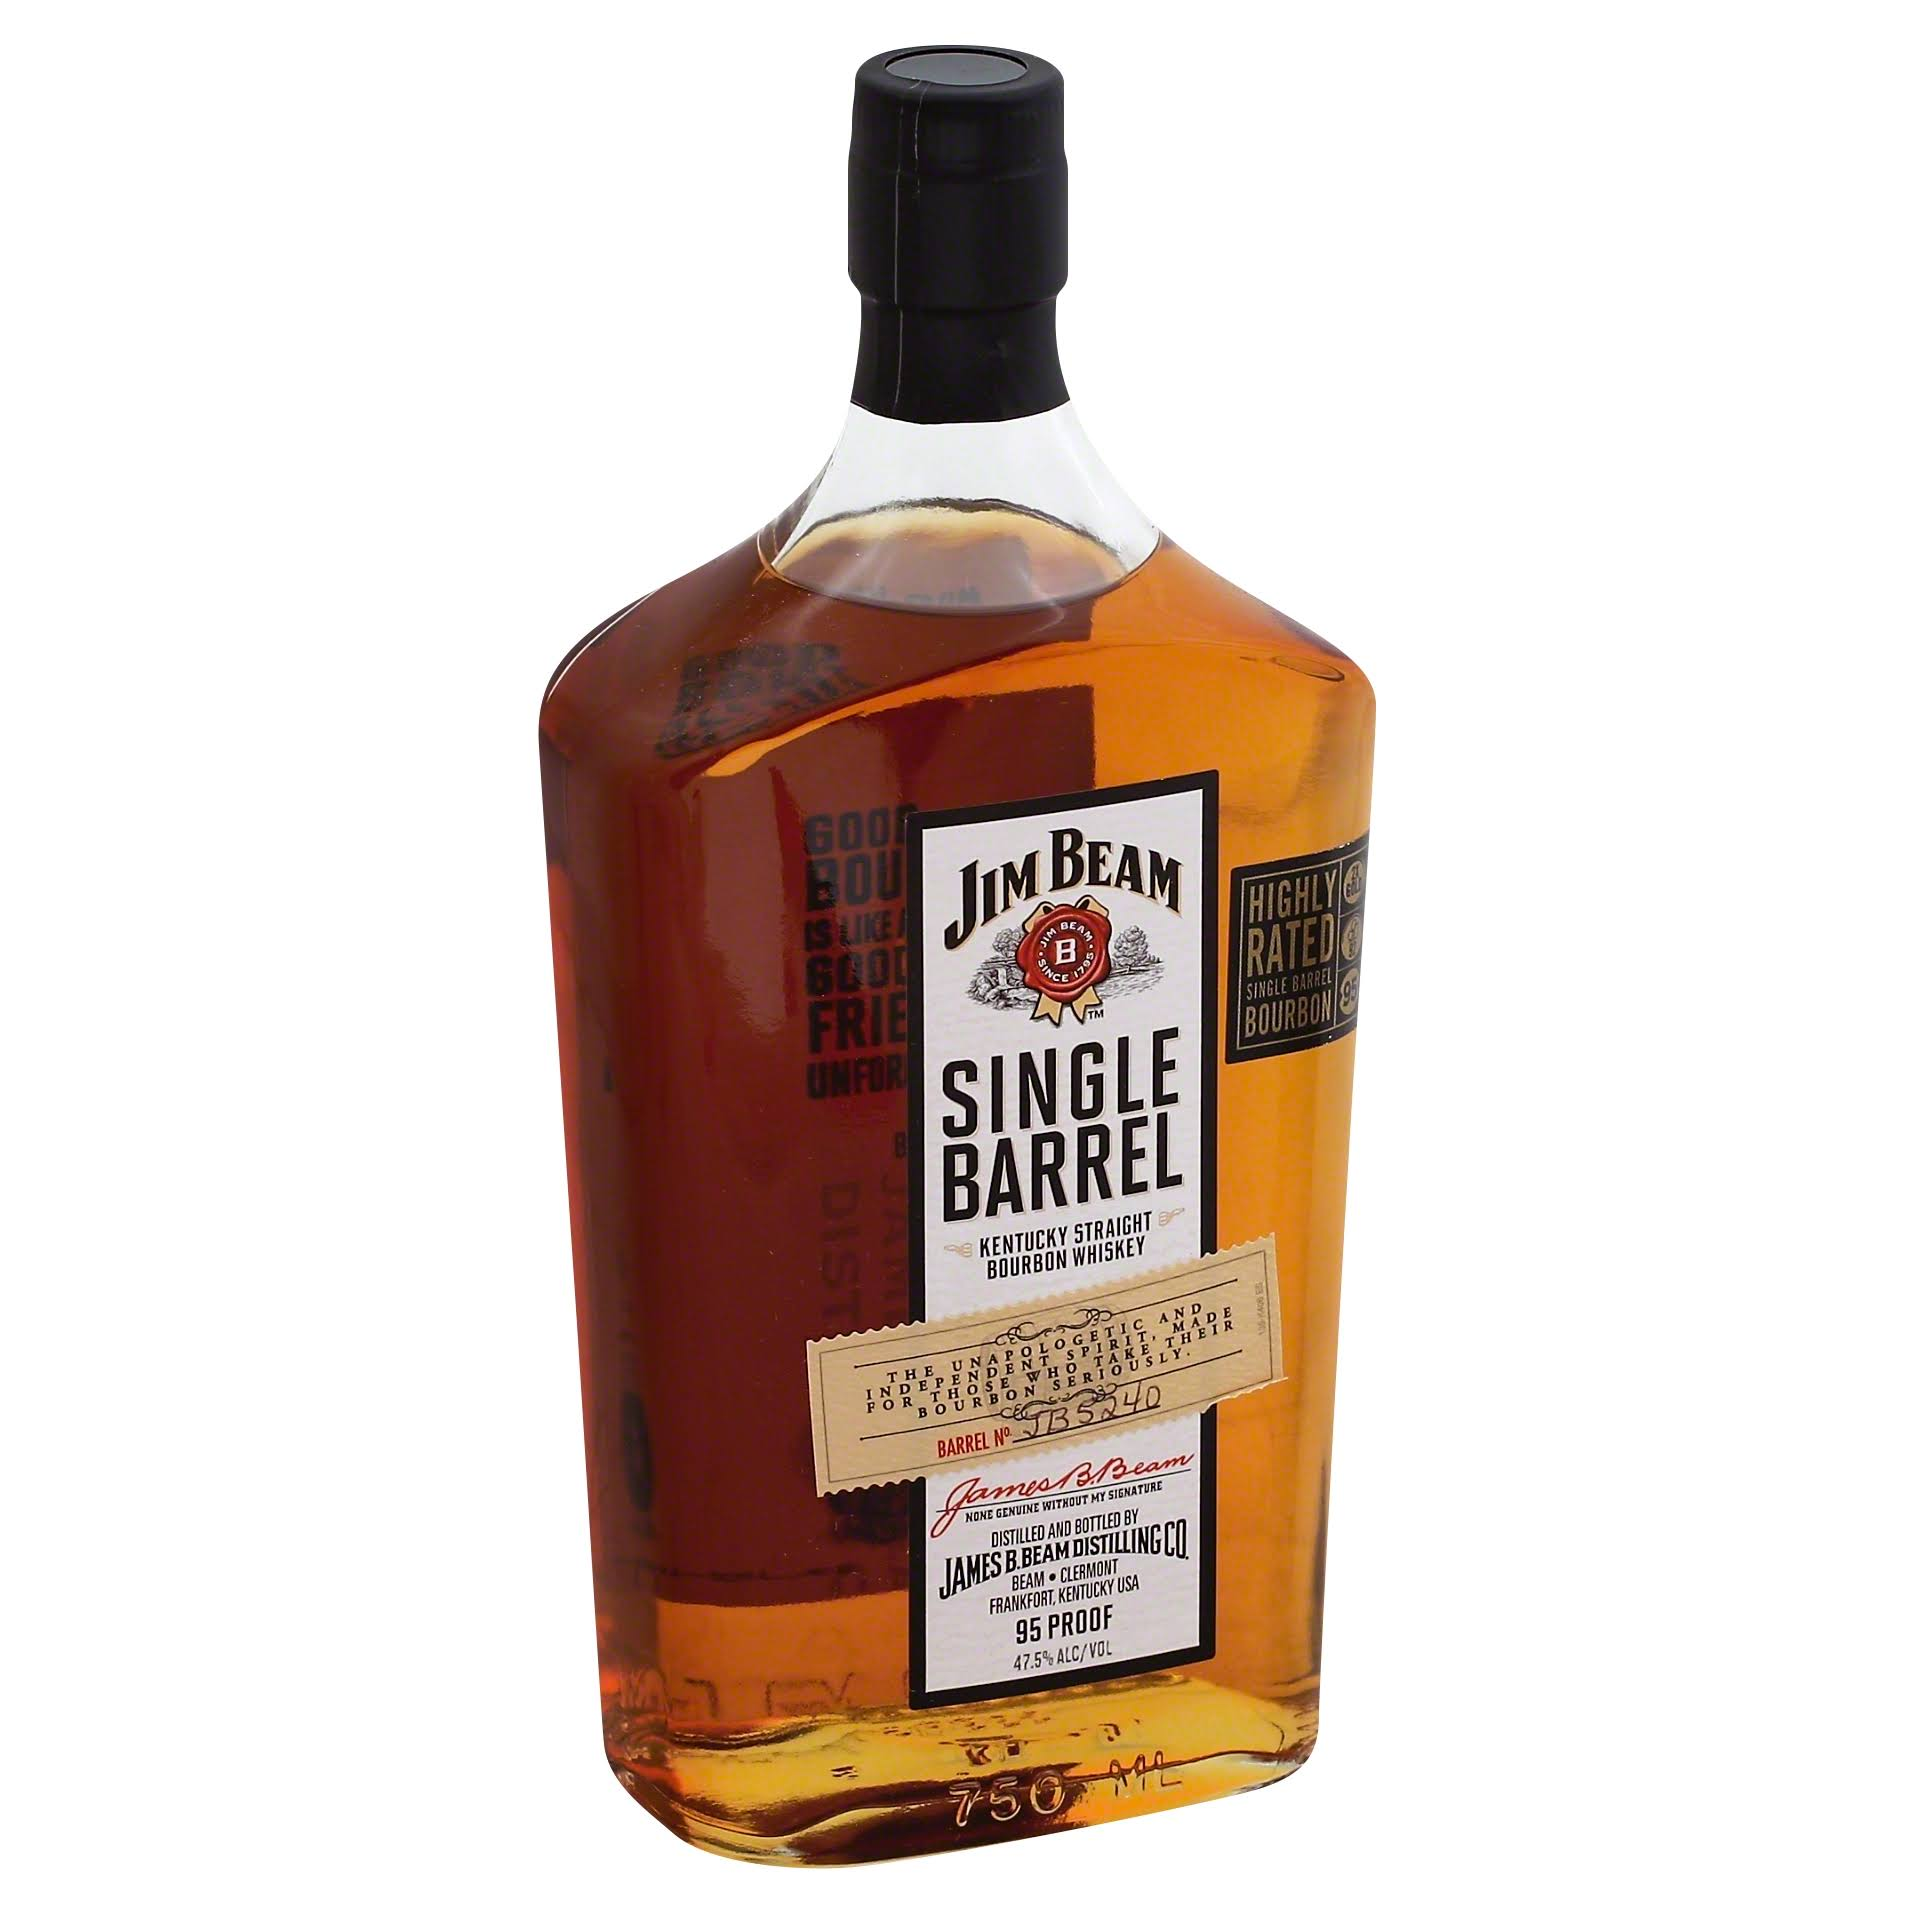 Jim Beam  Single Barrel  Bourbon - 750 ml bottle